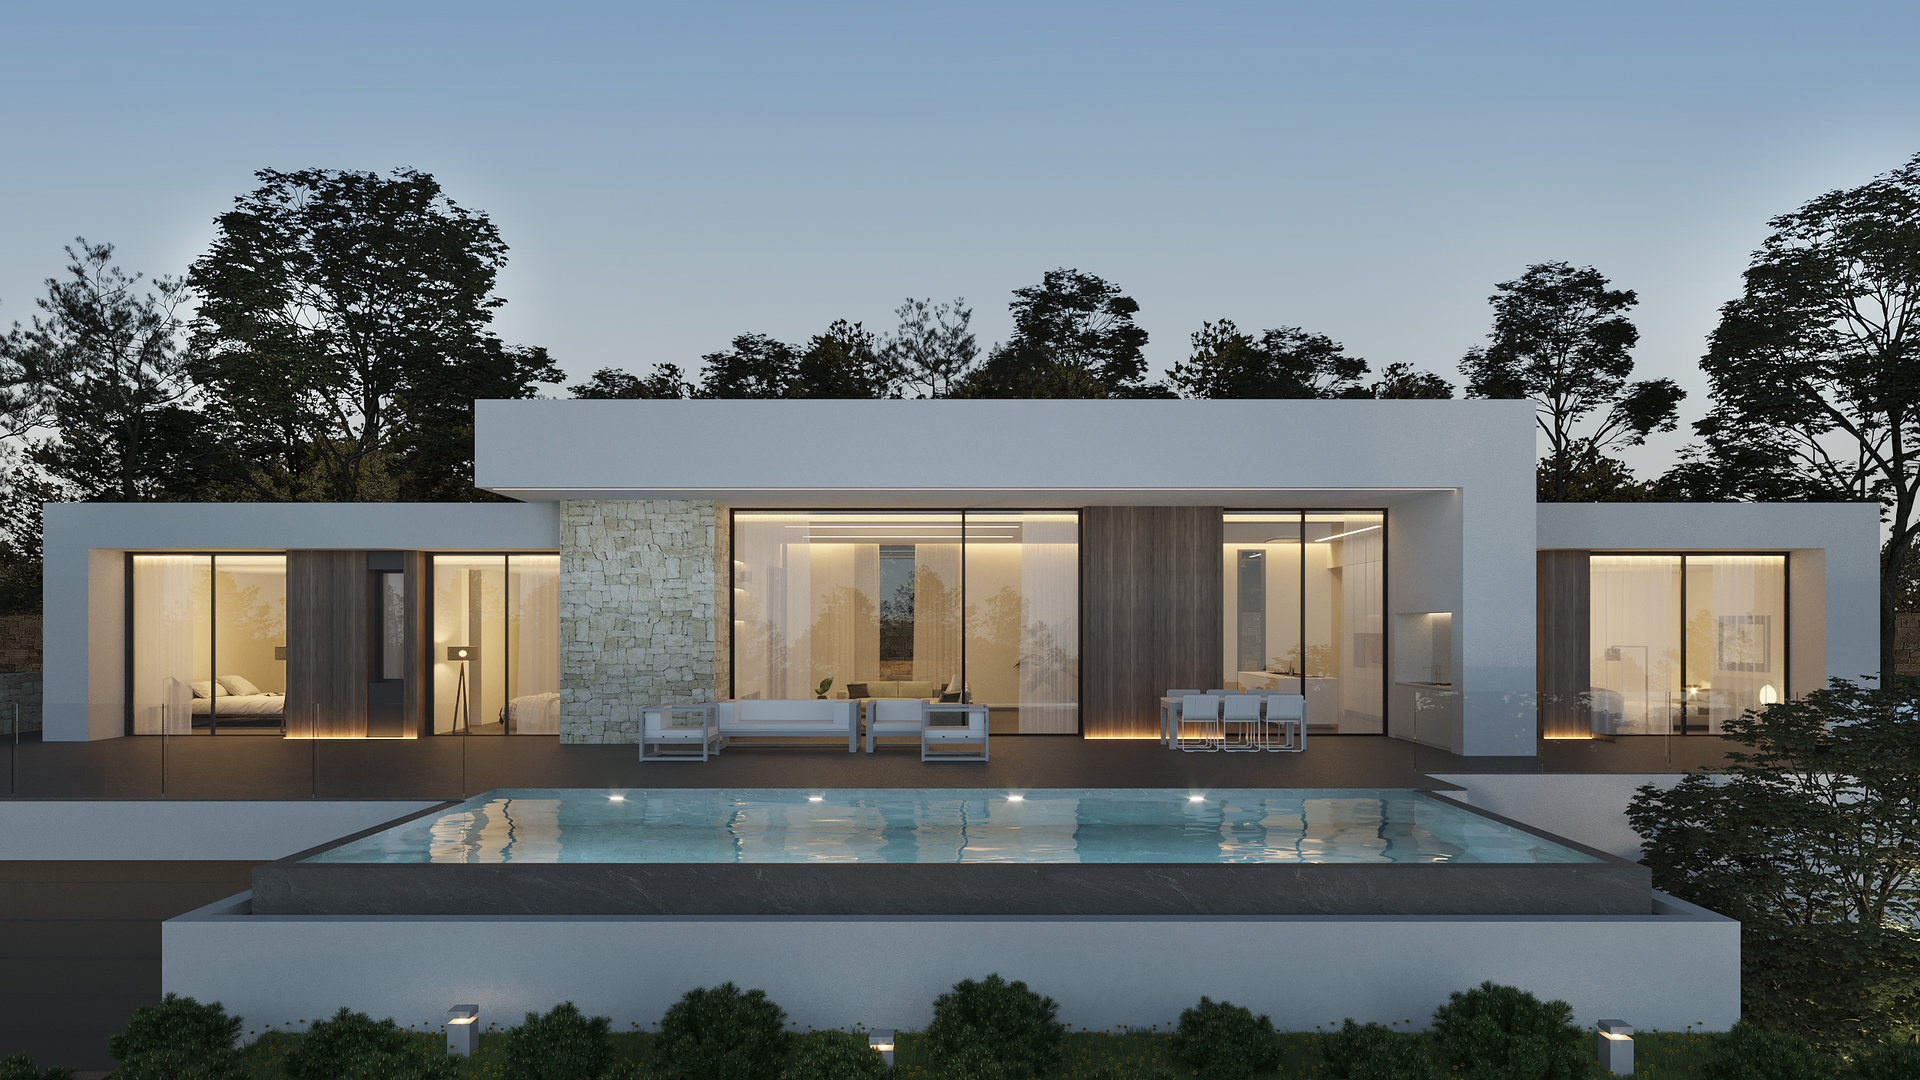 New building project in Javea